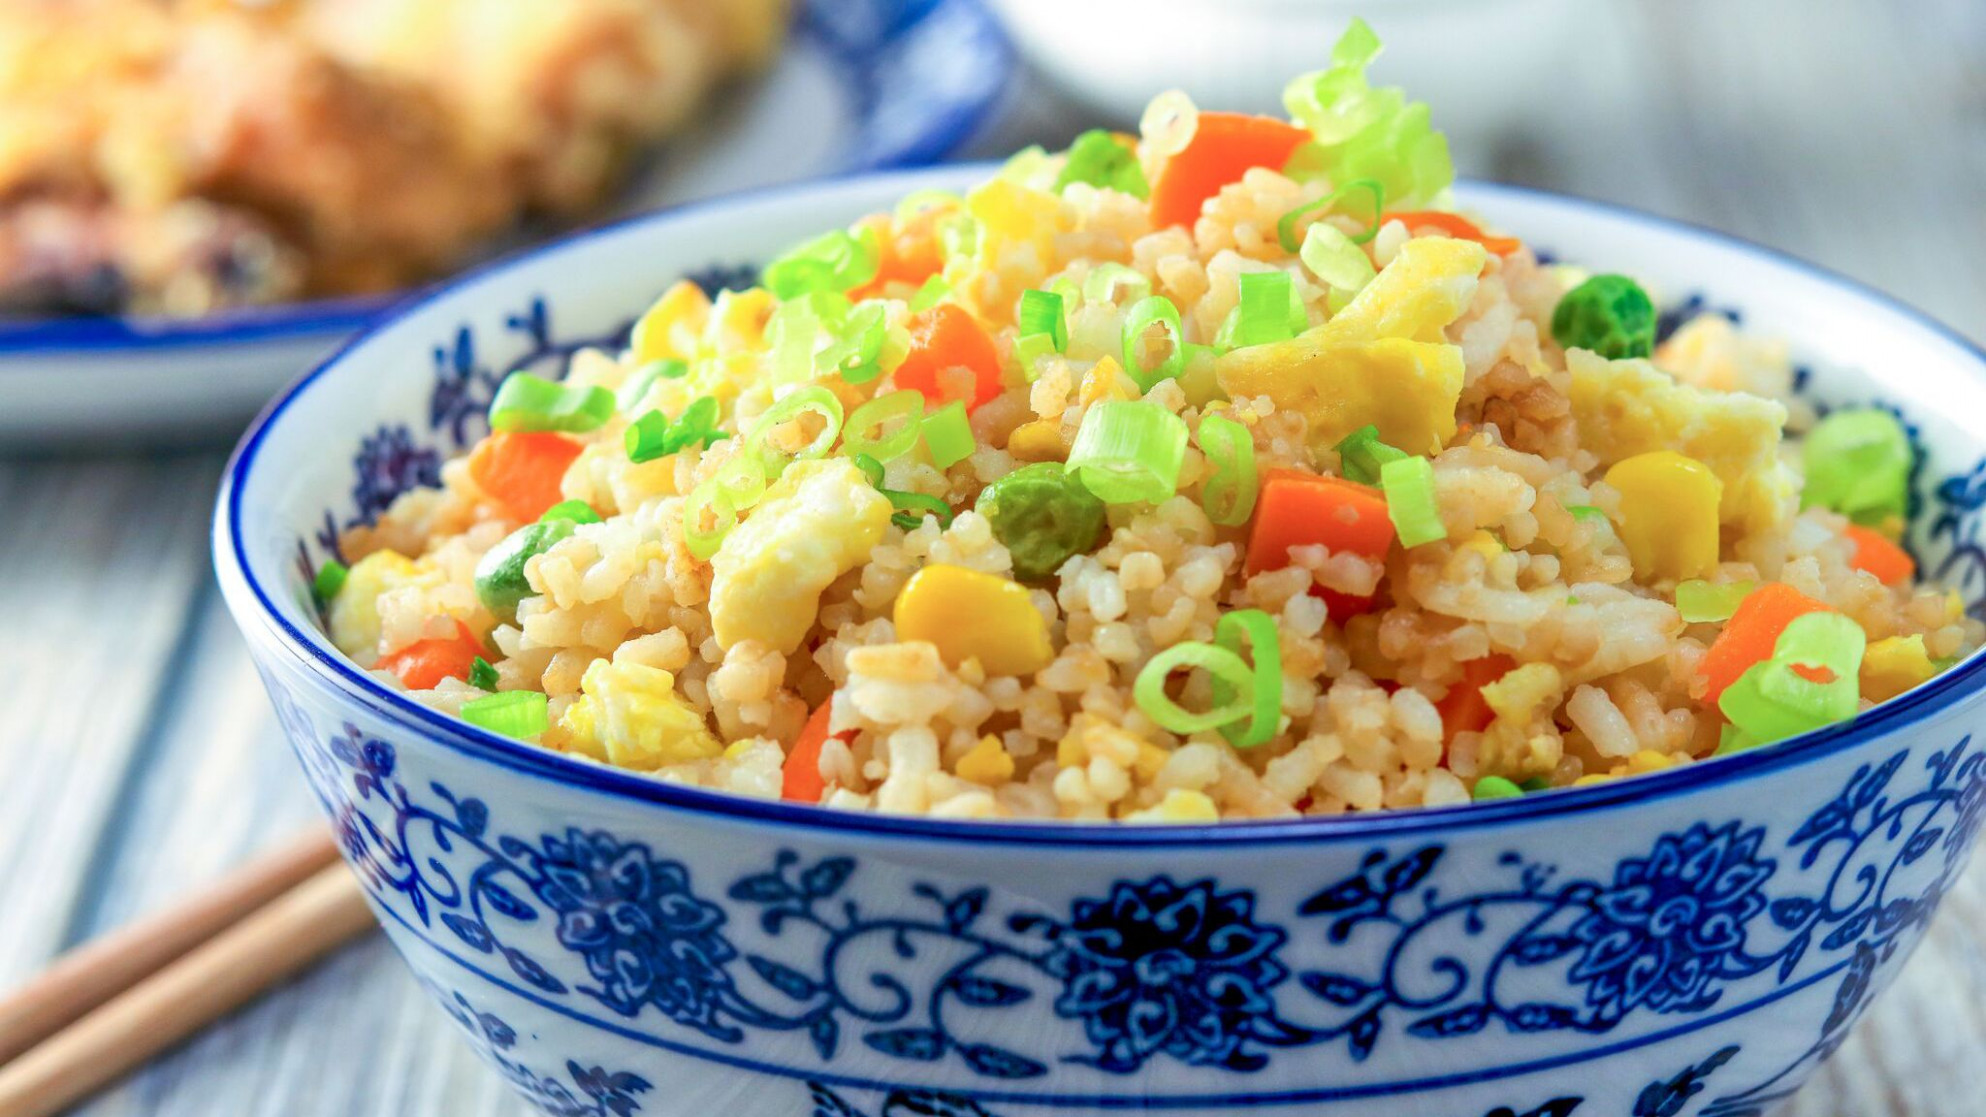 Fried Rice Recipe From Leftovers - food recipes with rice